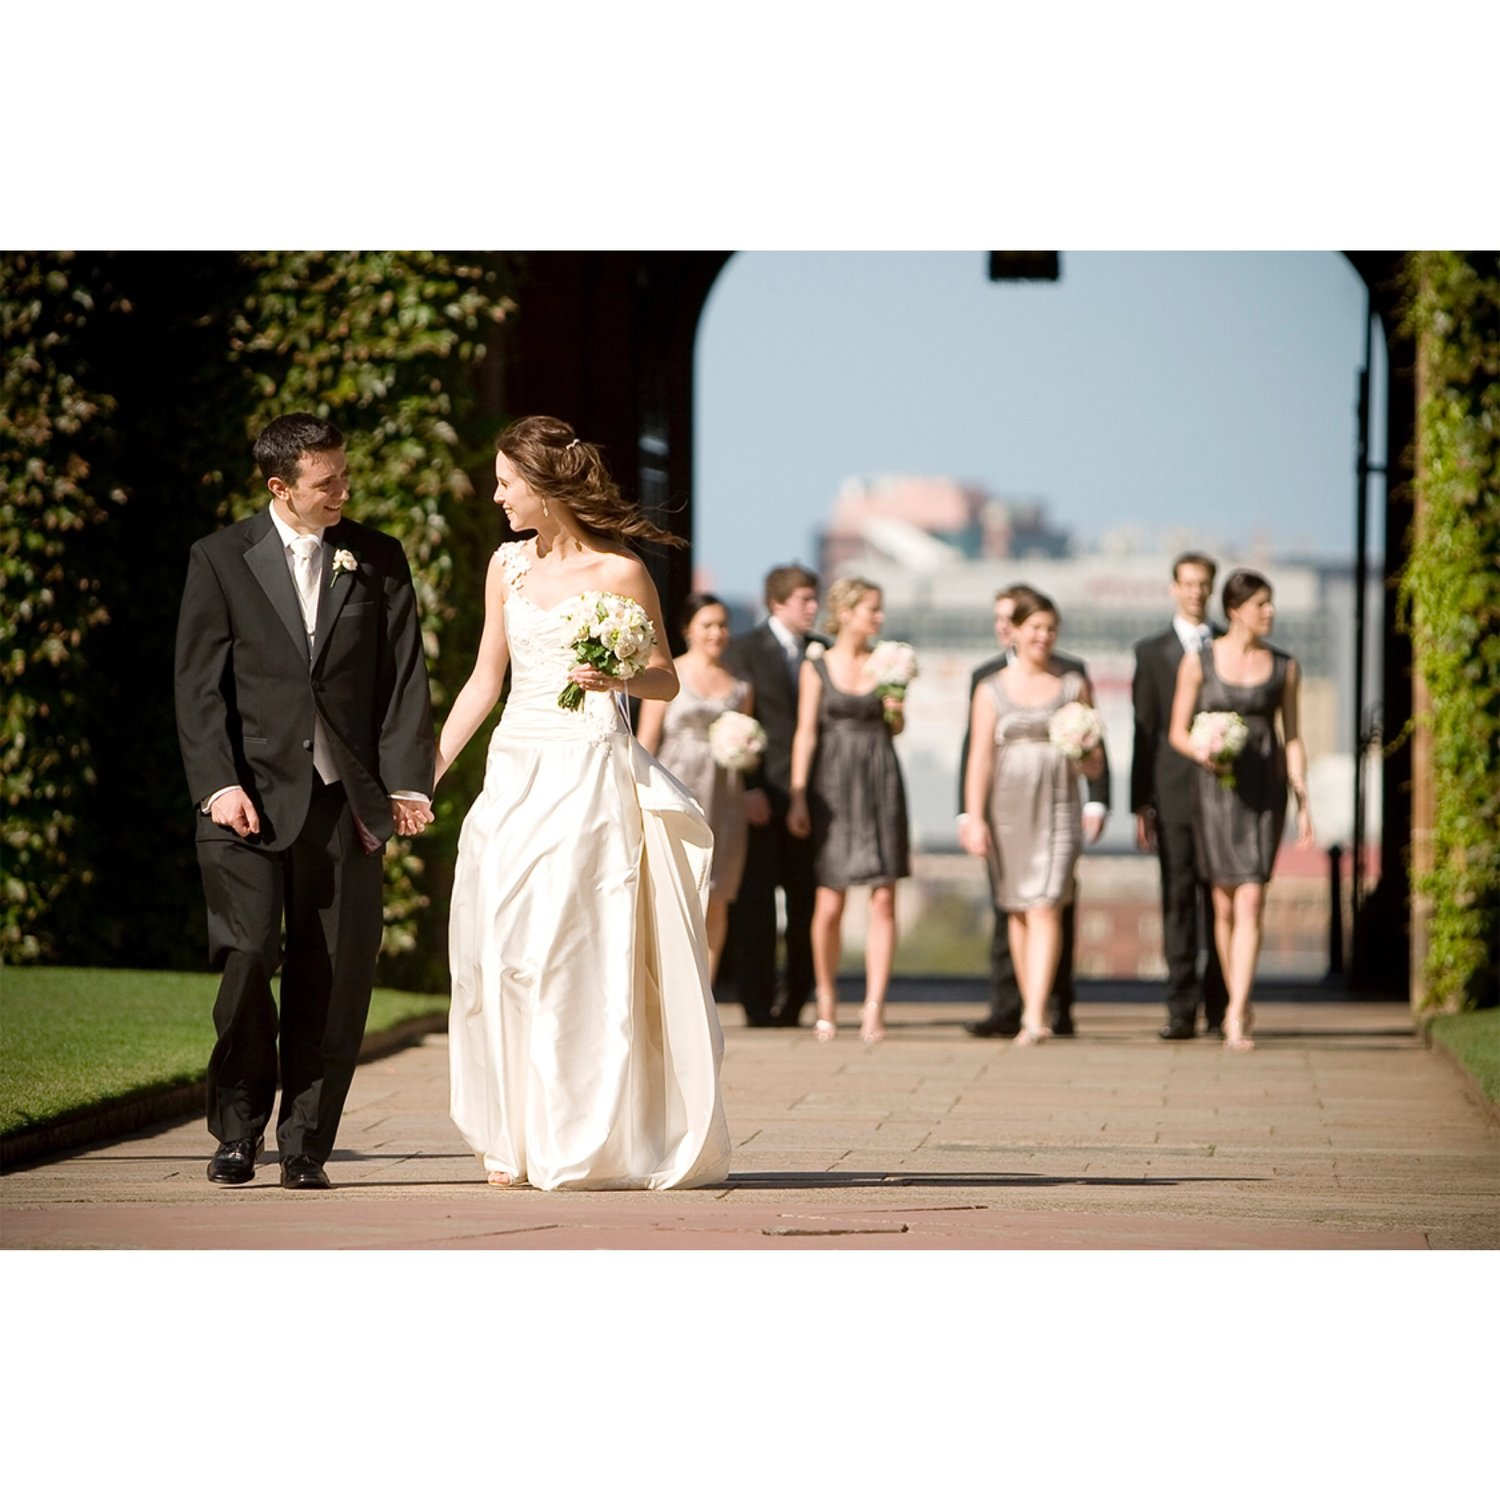 Wedding Photography by Christopher Hayles